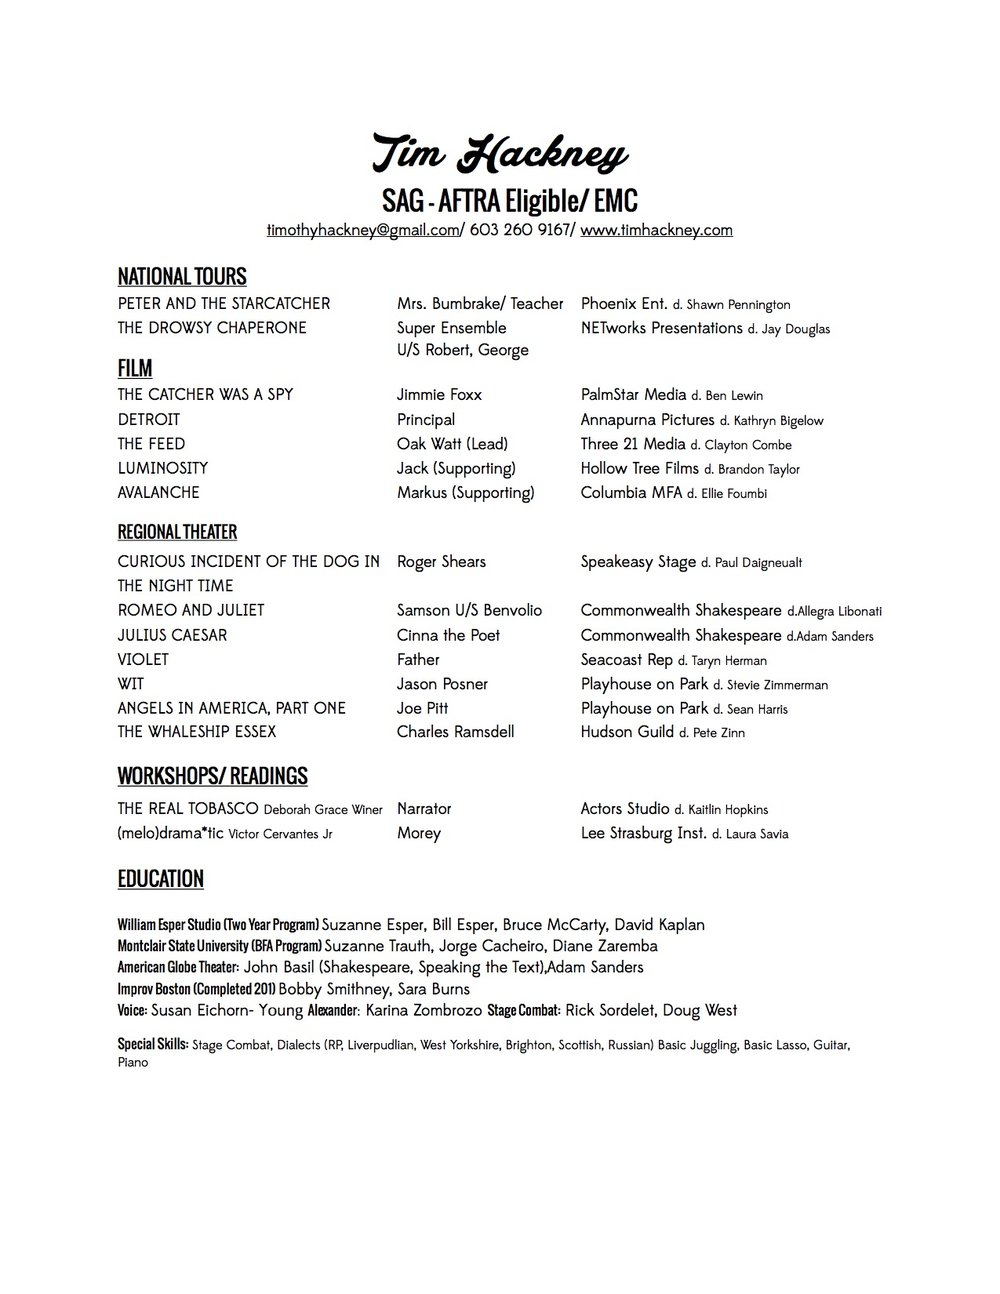 Tim Hackney Resume (Updated) website.jpg